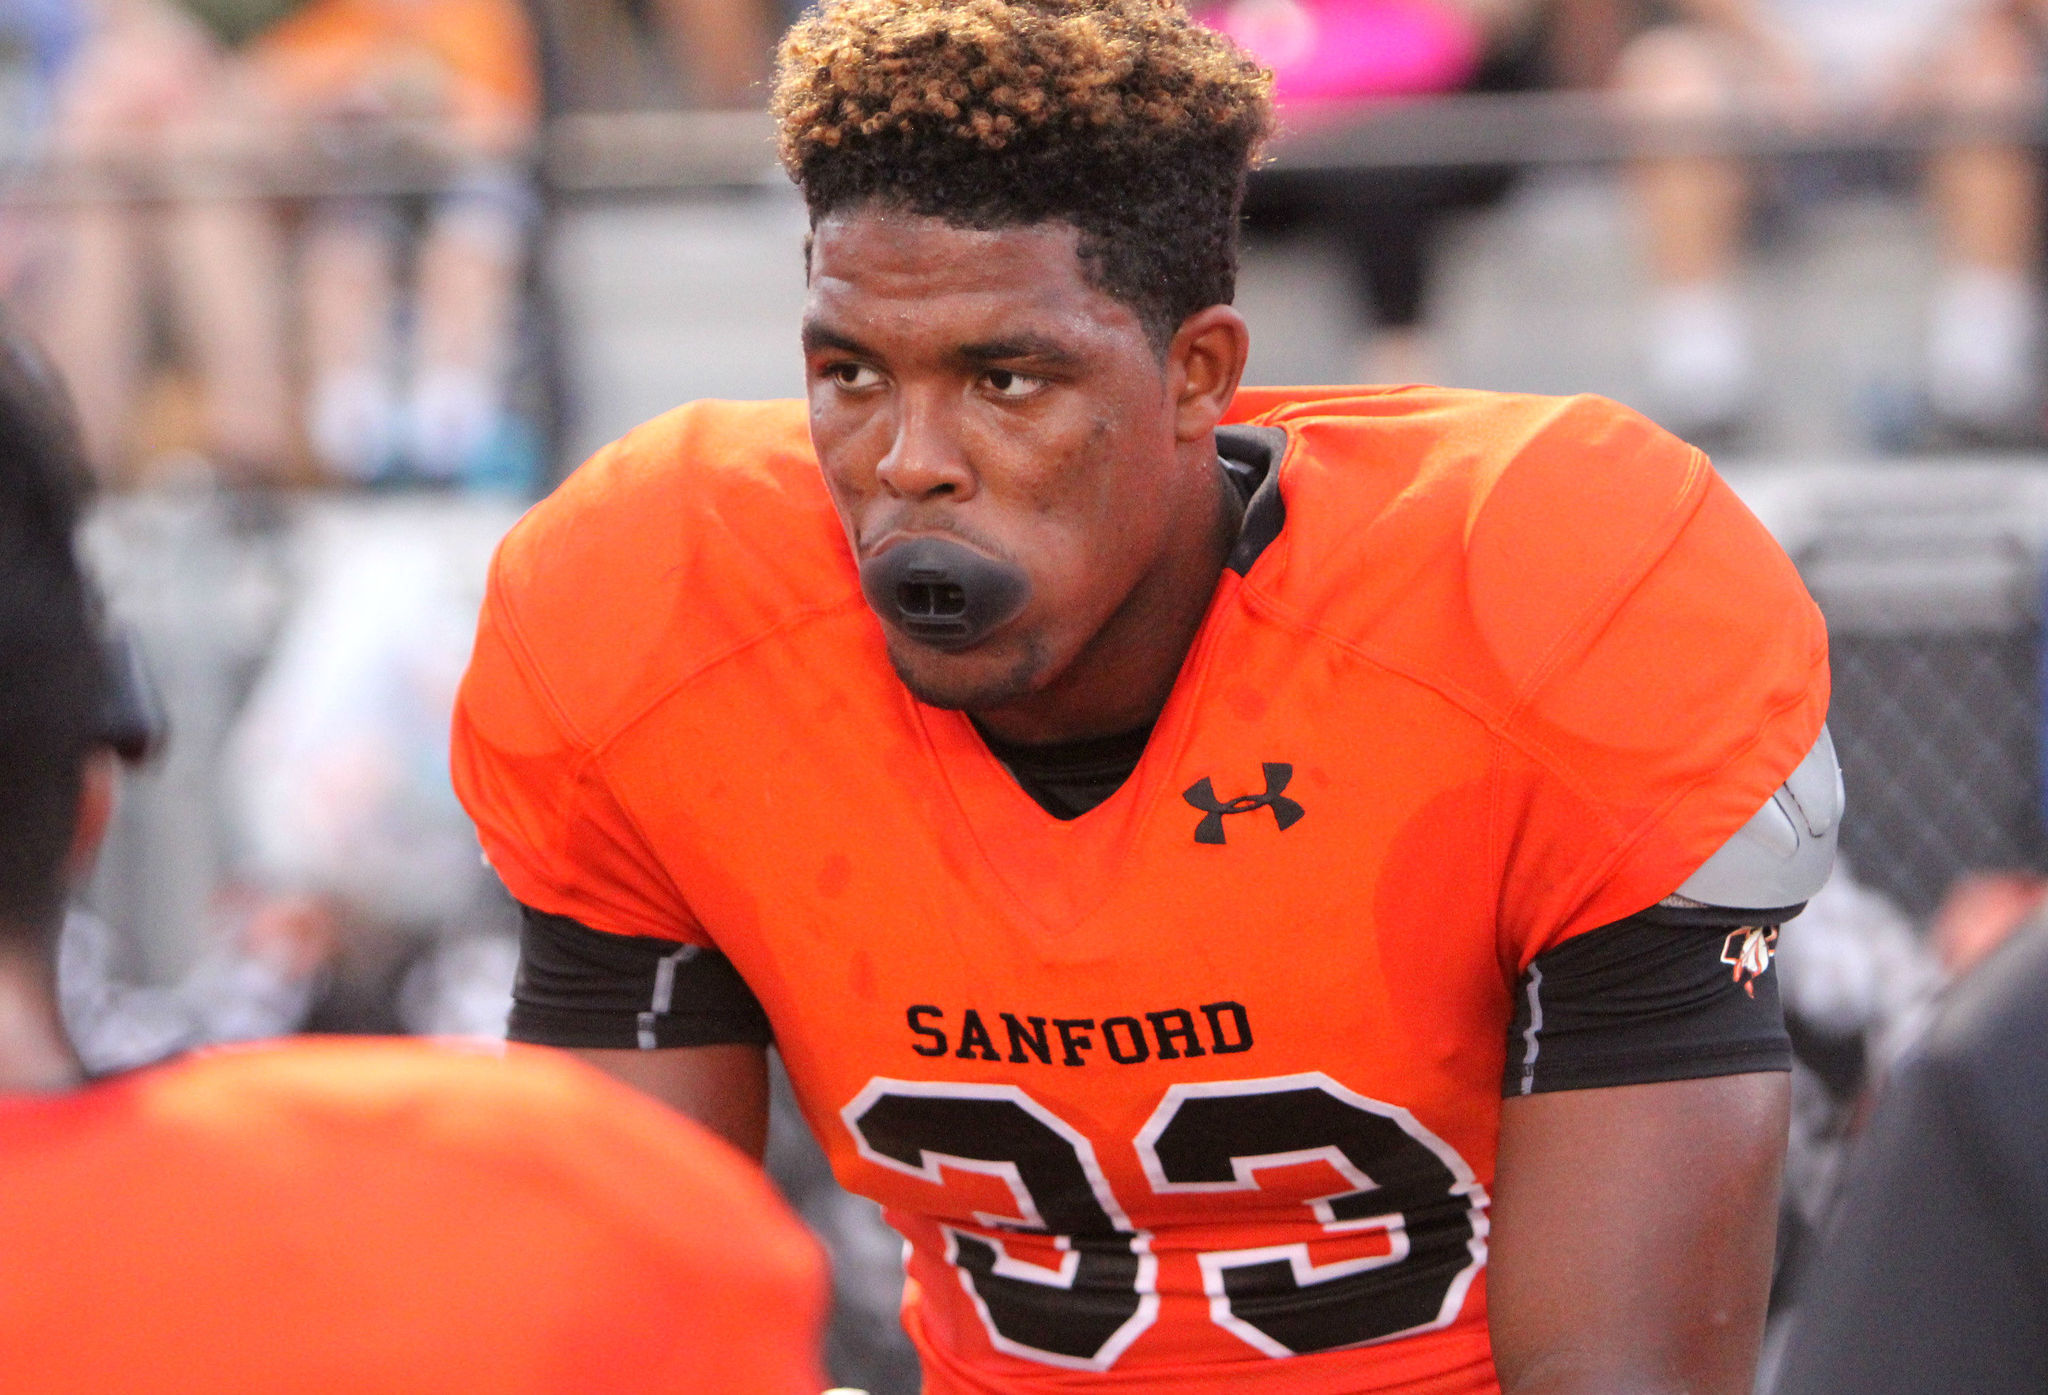 Os-fsu-offer-provides-dilemma-for-ucf-commit-demarco-artis-20160727